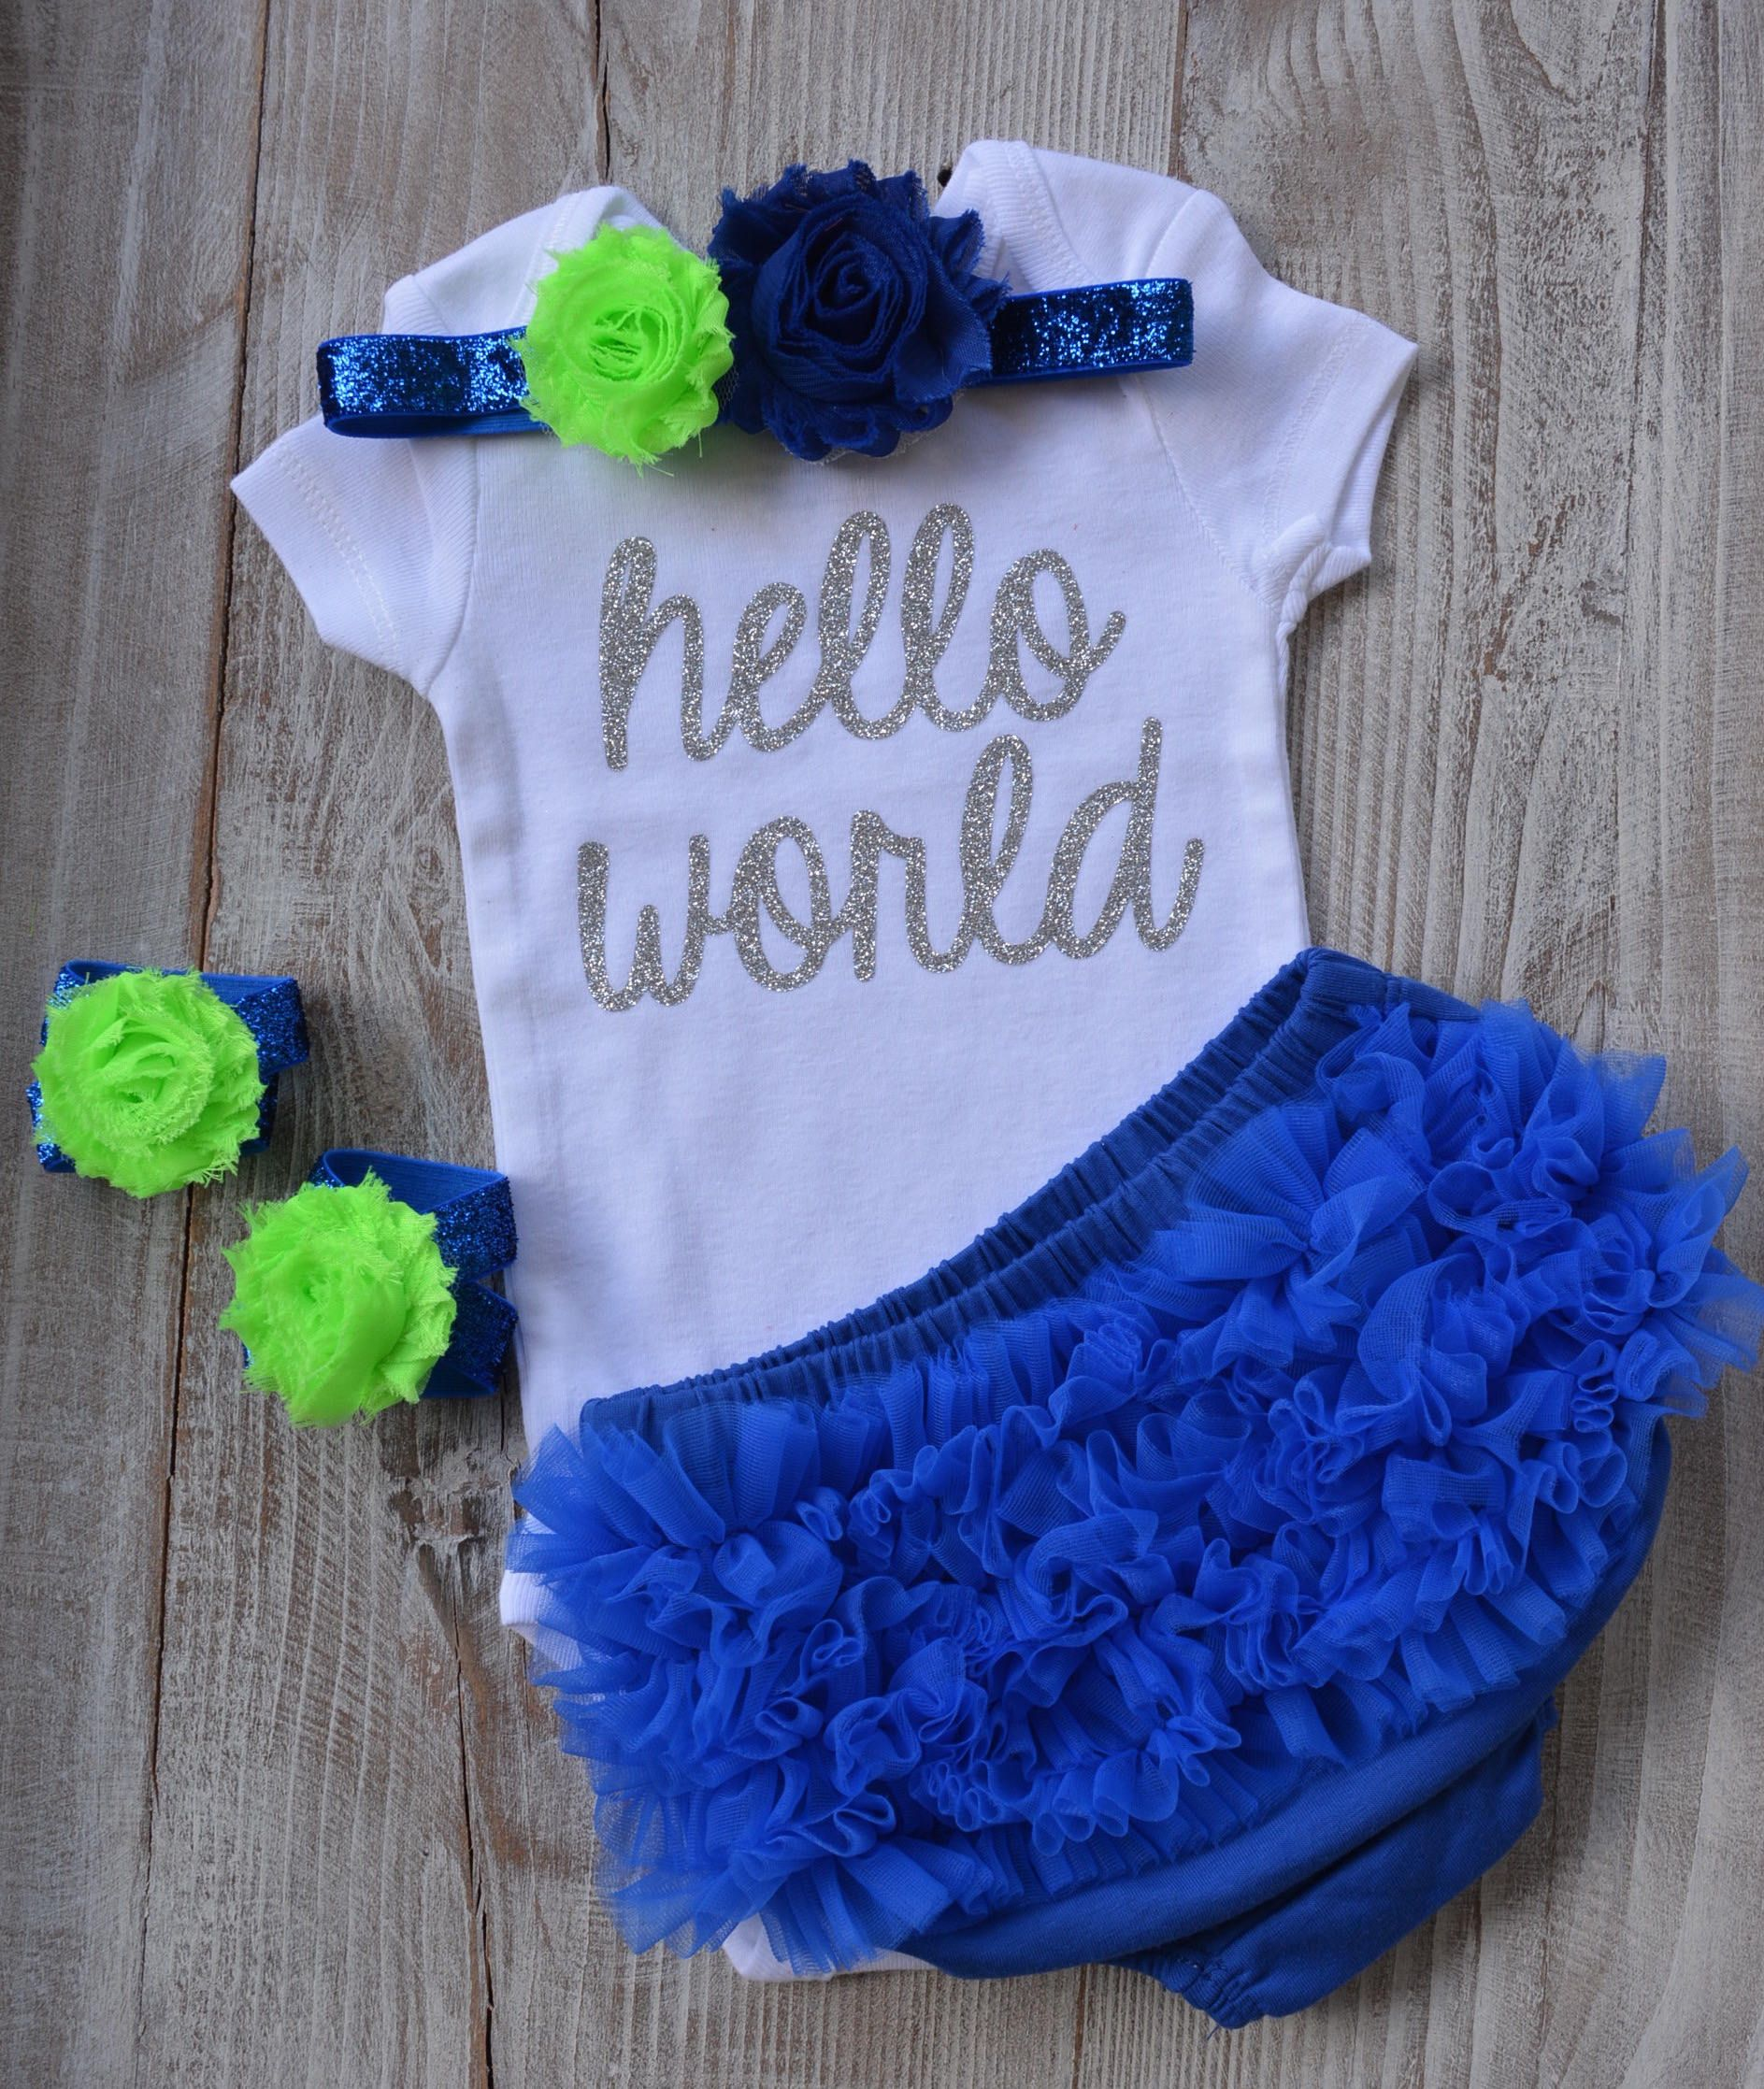 e3d419f4b Hello World Baby Newborn Girl Coming Home Outfit - Baby Girl Royal ...